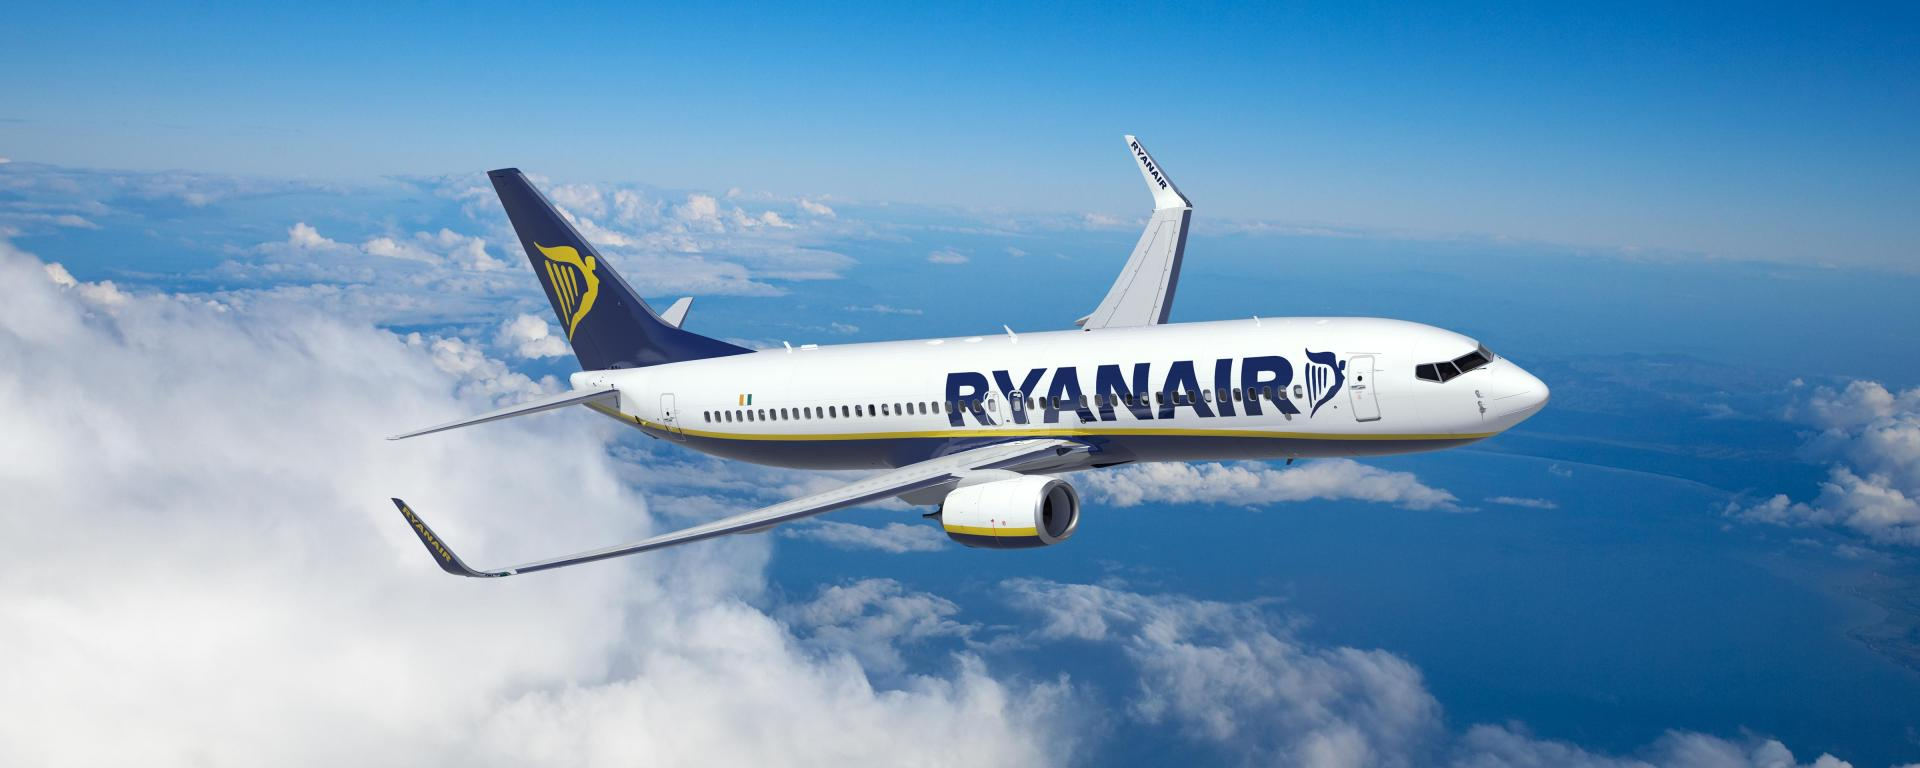 Ryanair applies for court order to block planned pilot strike